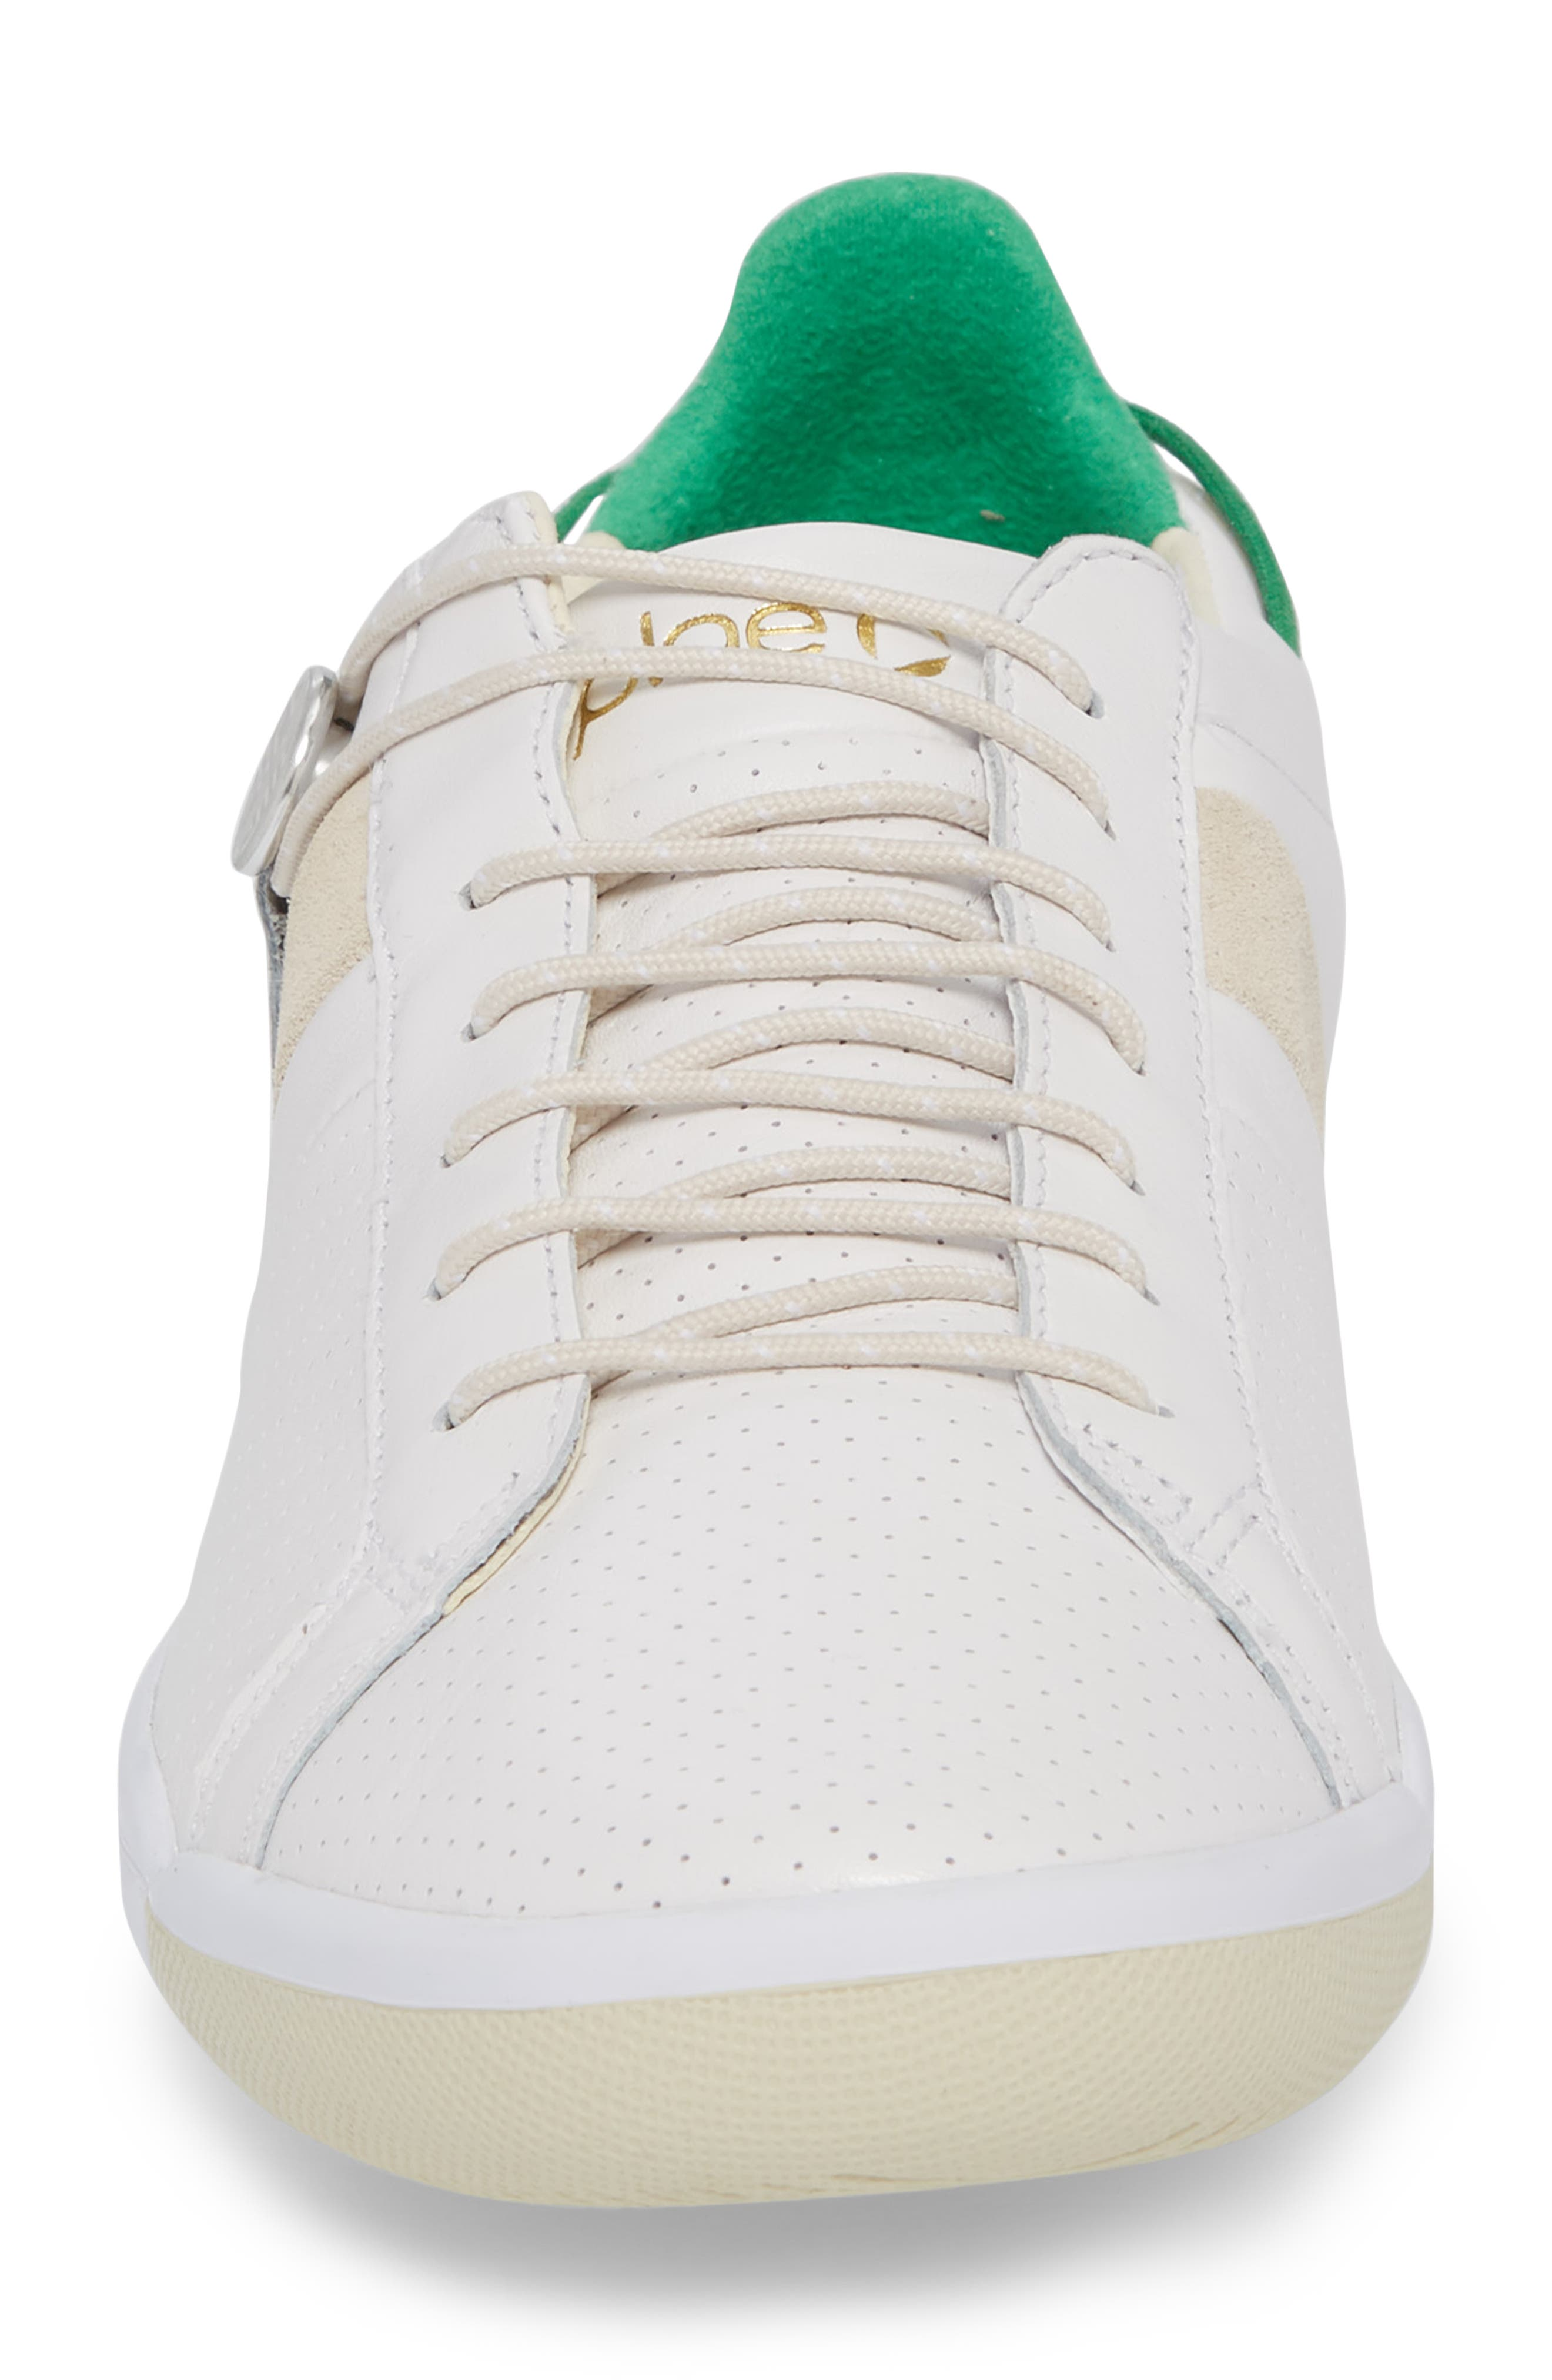 Mulberry Low Top Sneaker,                             Alternate thumbnail 4, color,                             White